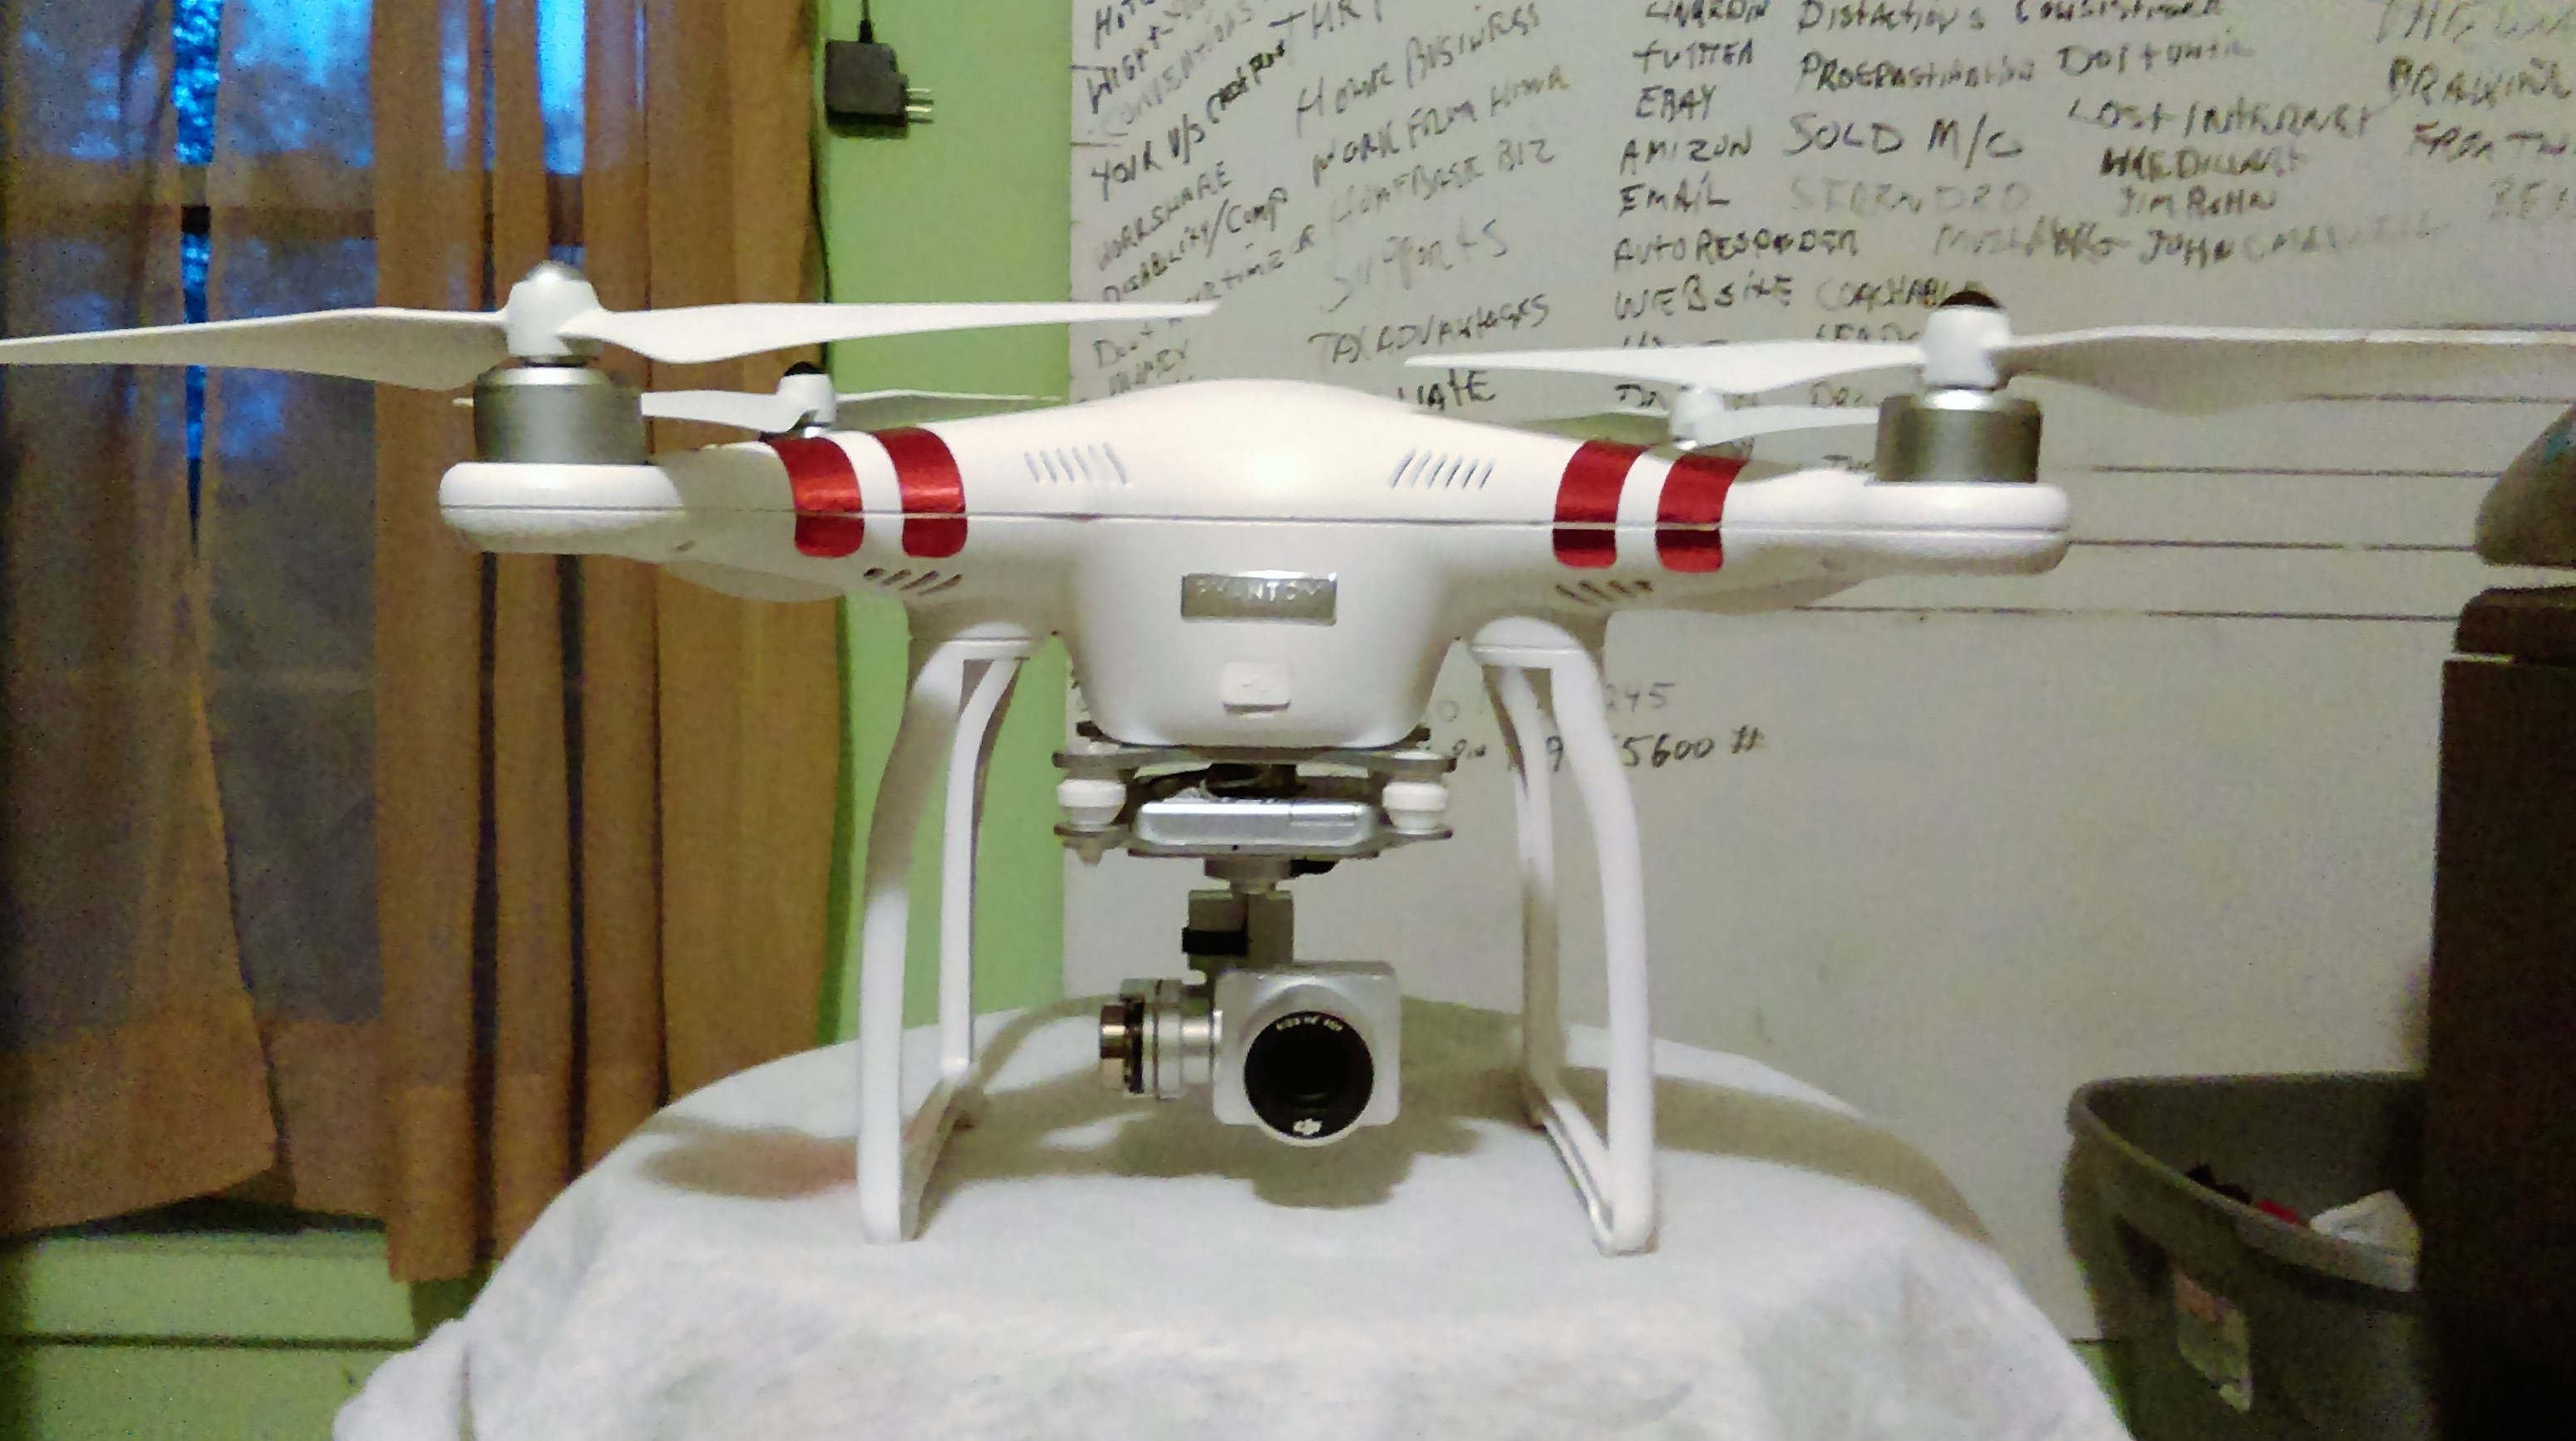 DJI Phantom 3 Final episode in the Series Post crash Repair